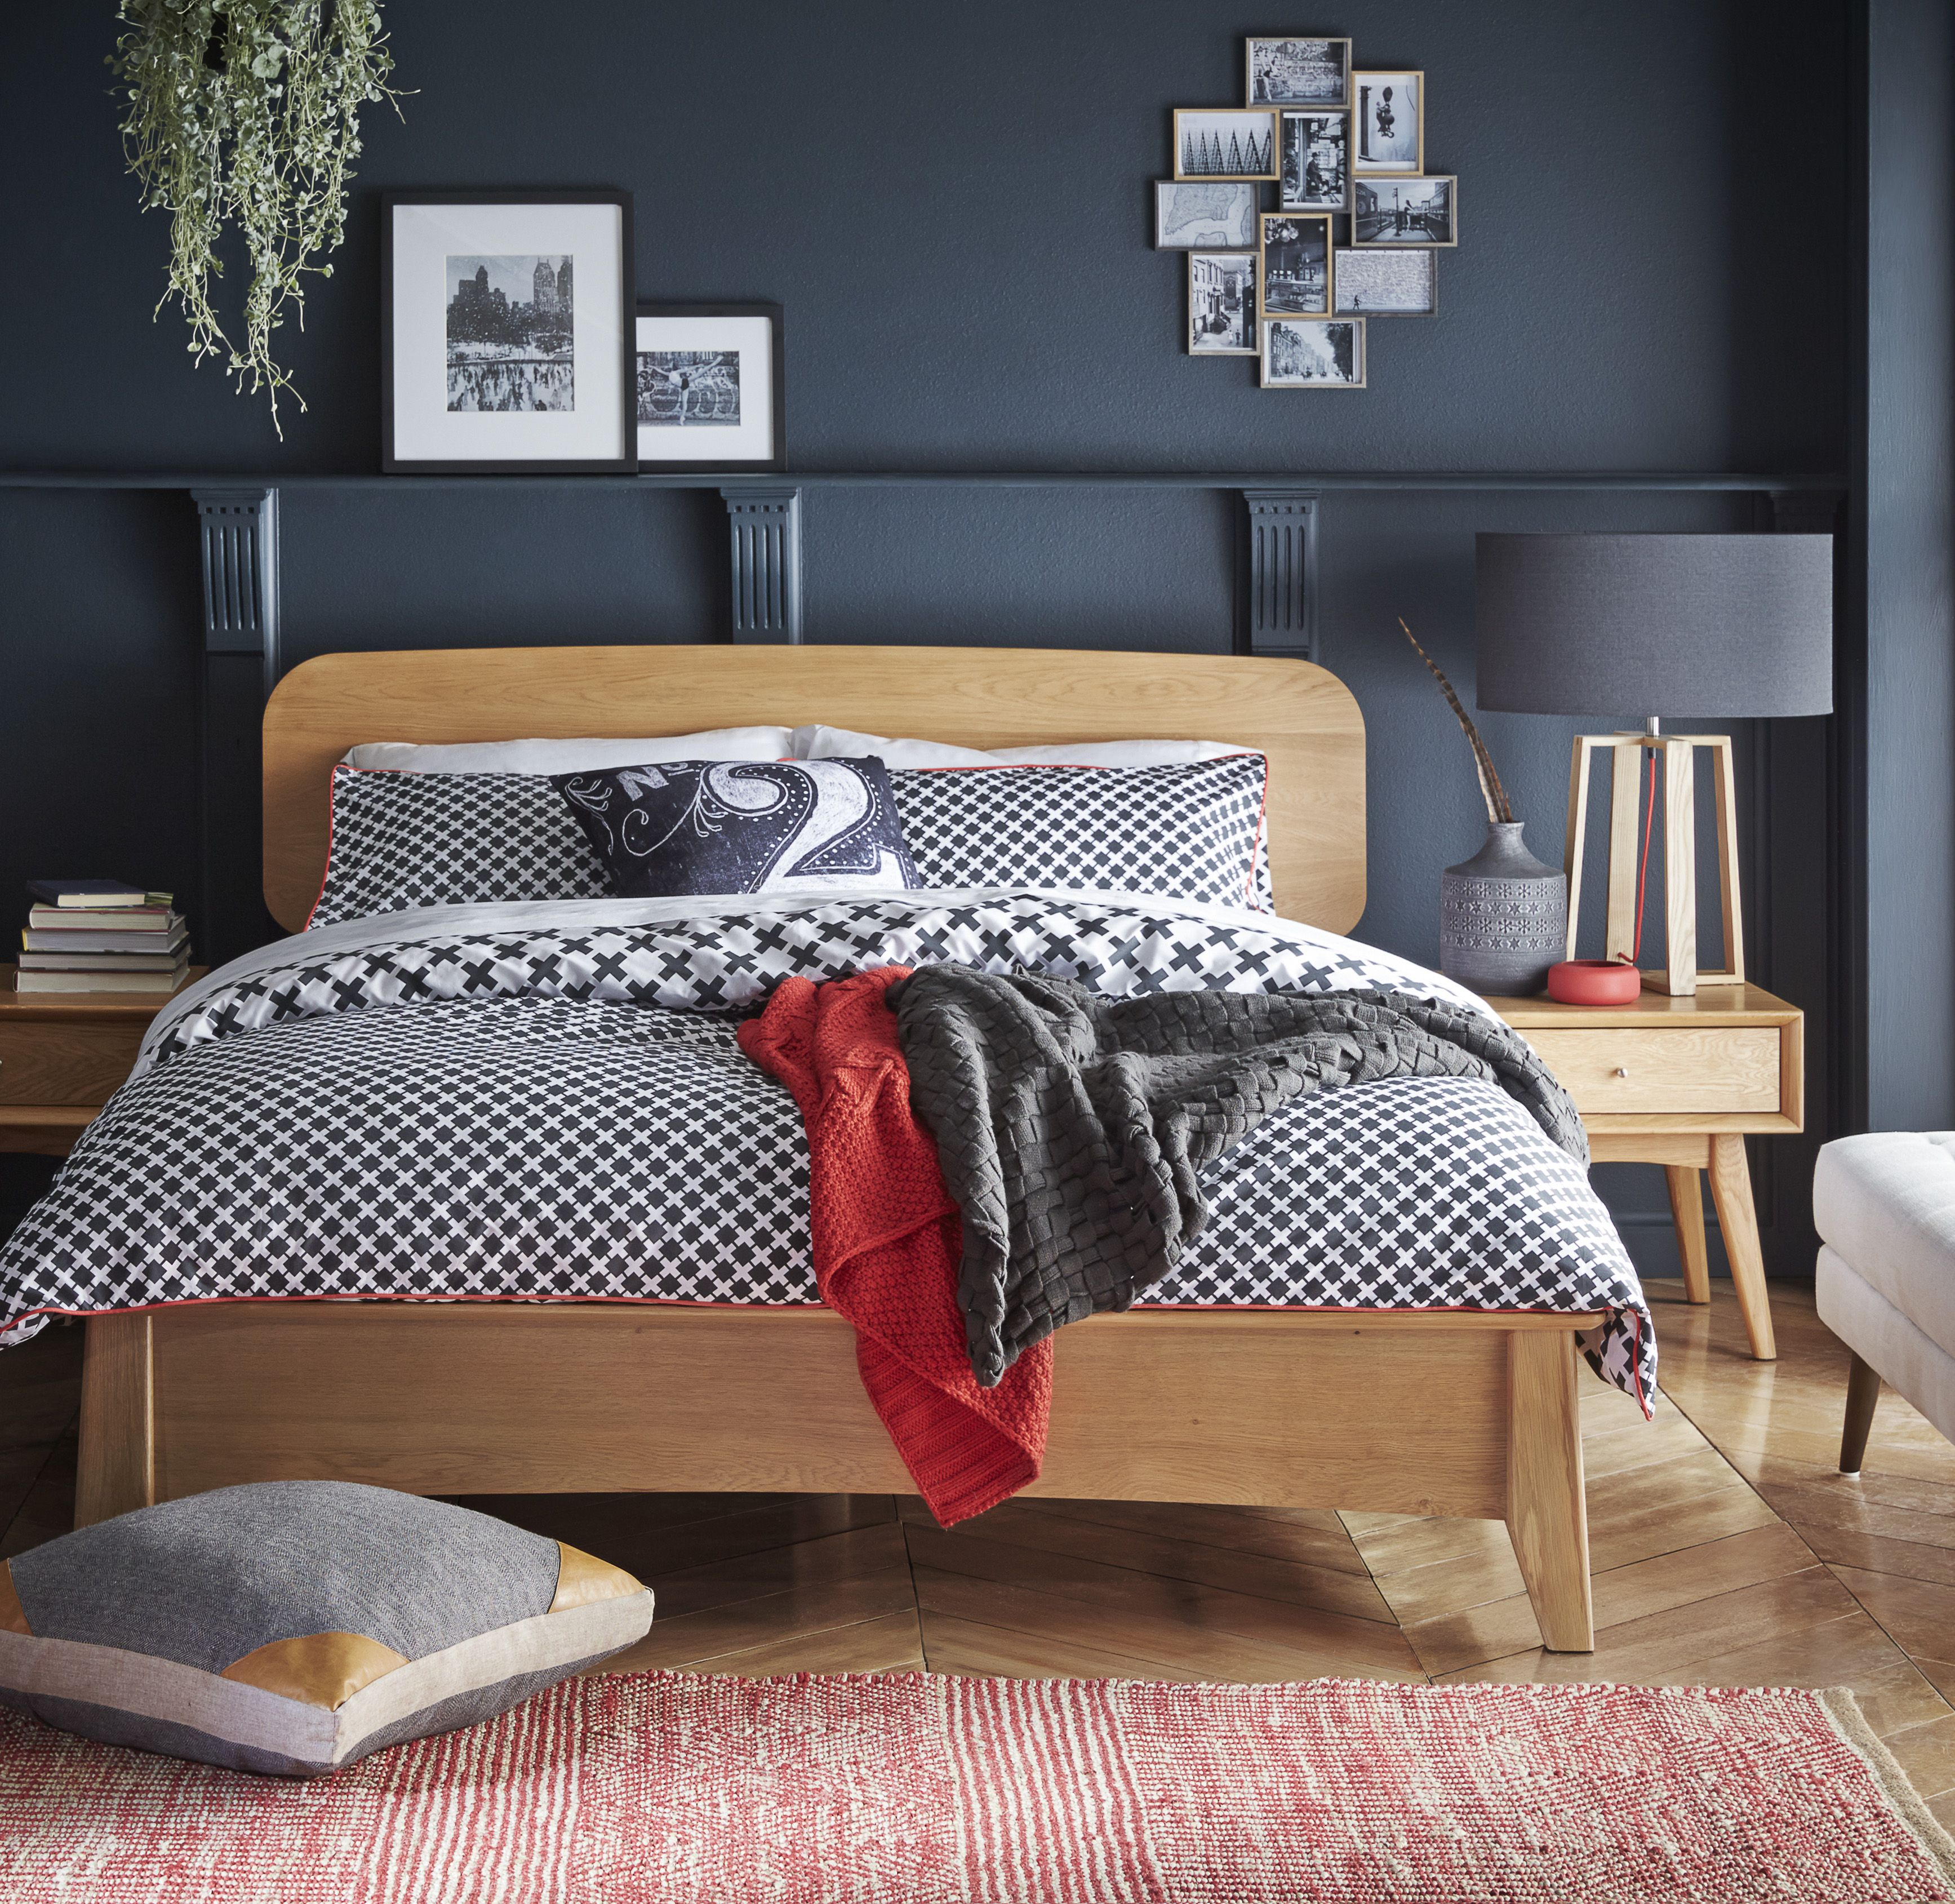 Freedom Doona Cover Shaynna Blaze On The 5 Colour Trends To Use This Winter